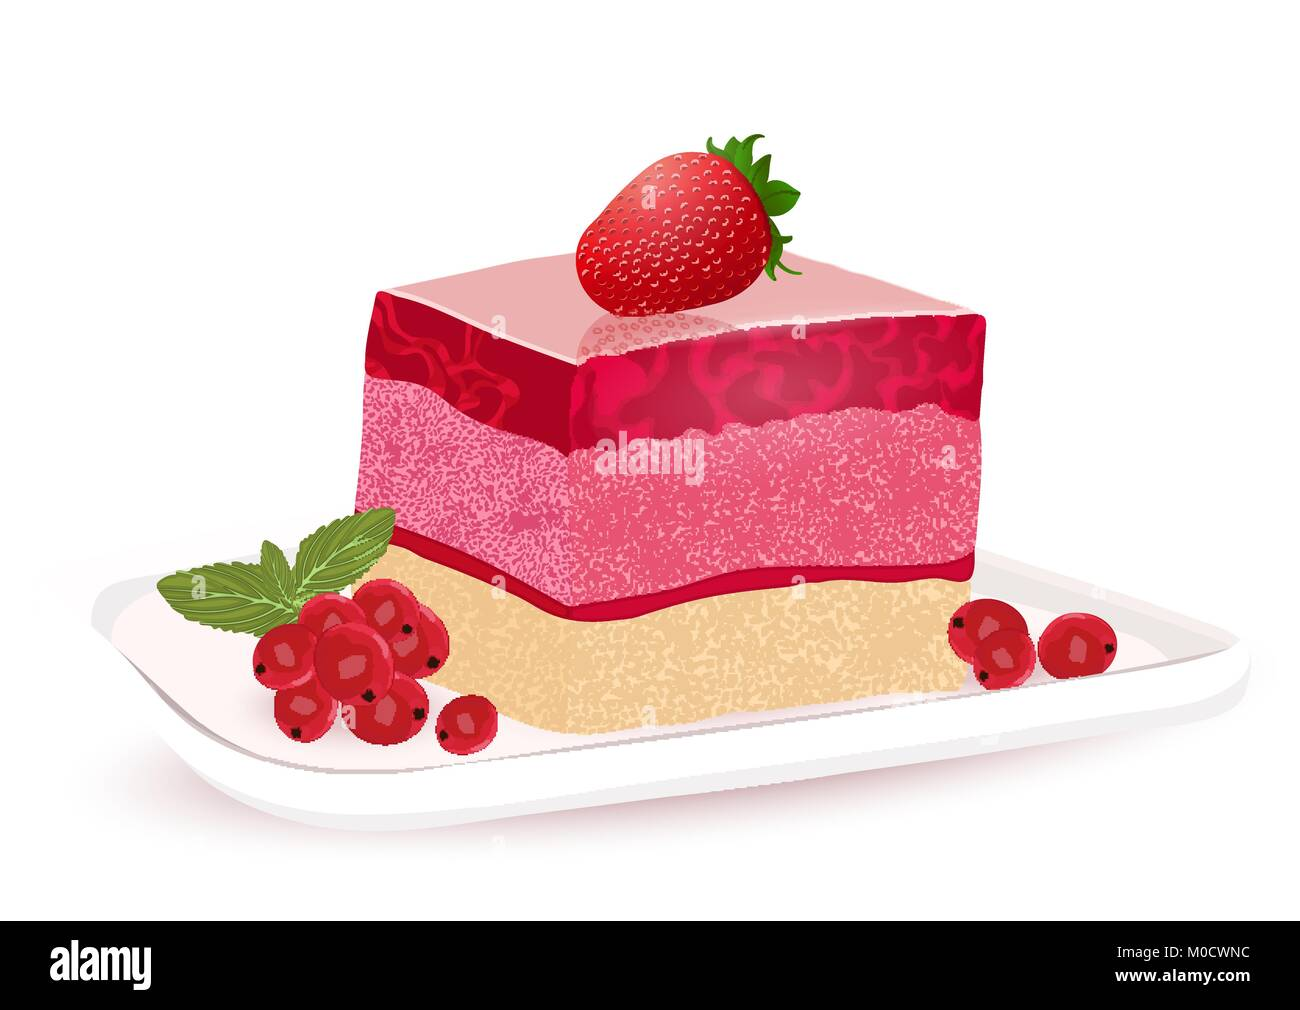 Cartoon Jelly Cake Recipe: Cake With Berry Jelly, Vector Drawing, Painted Dessert. A